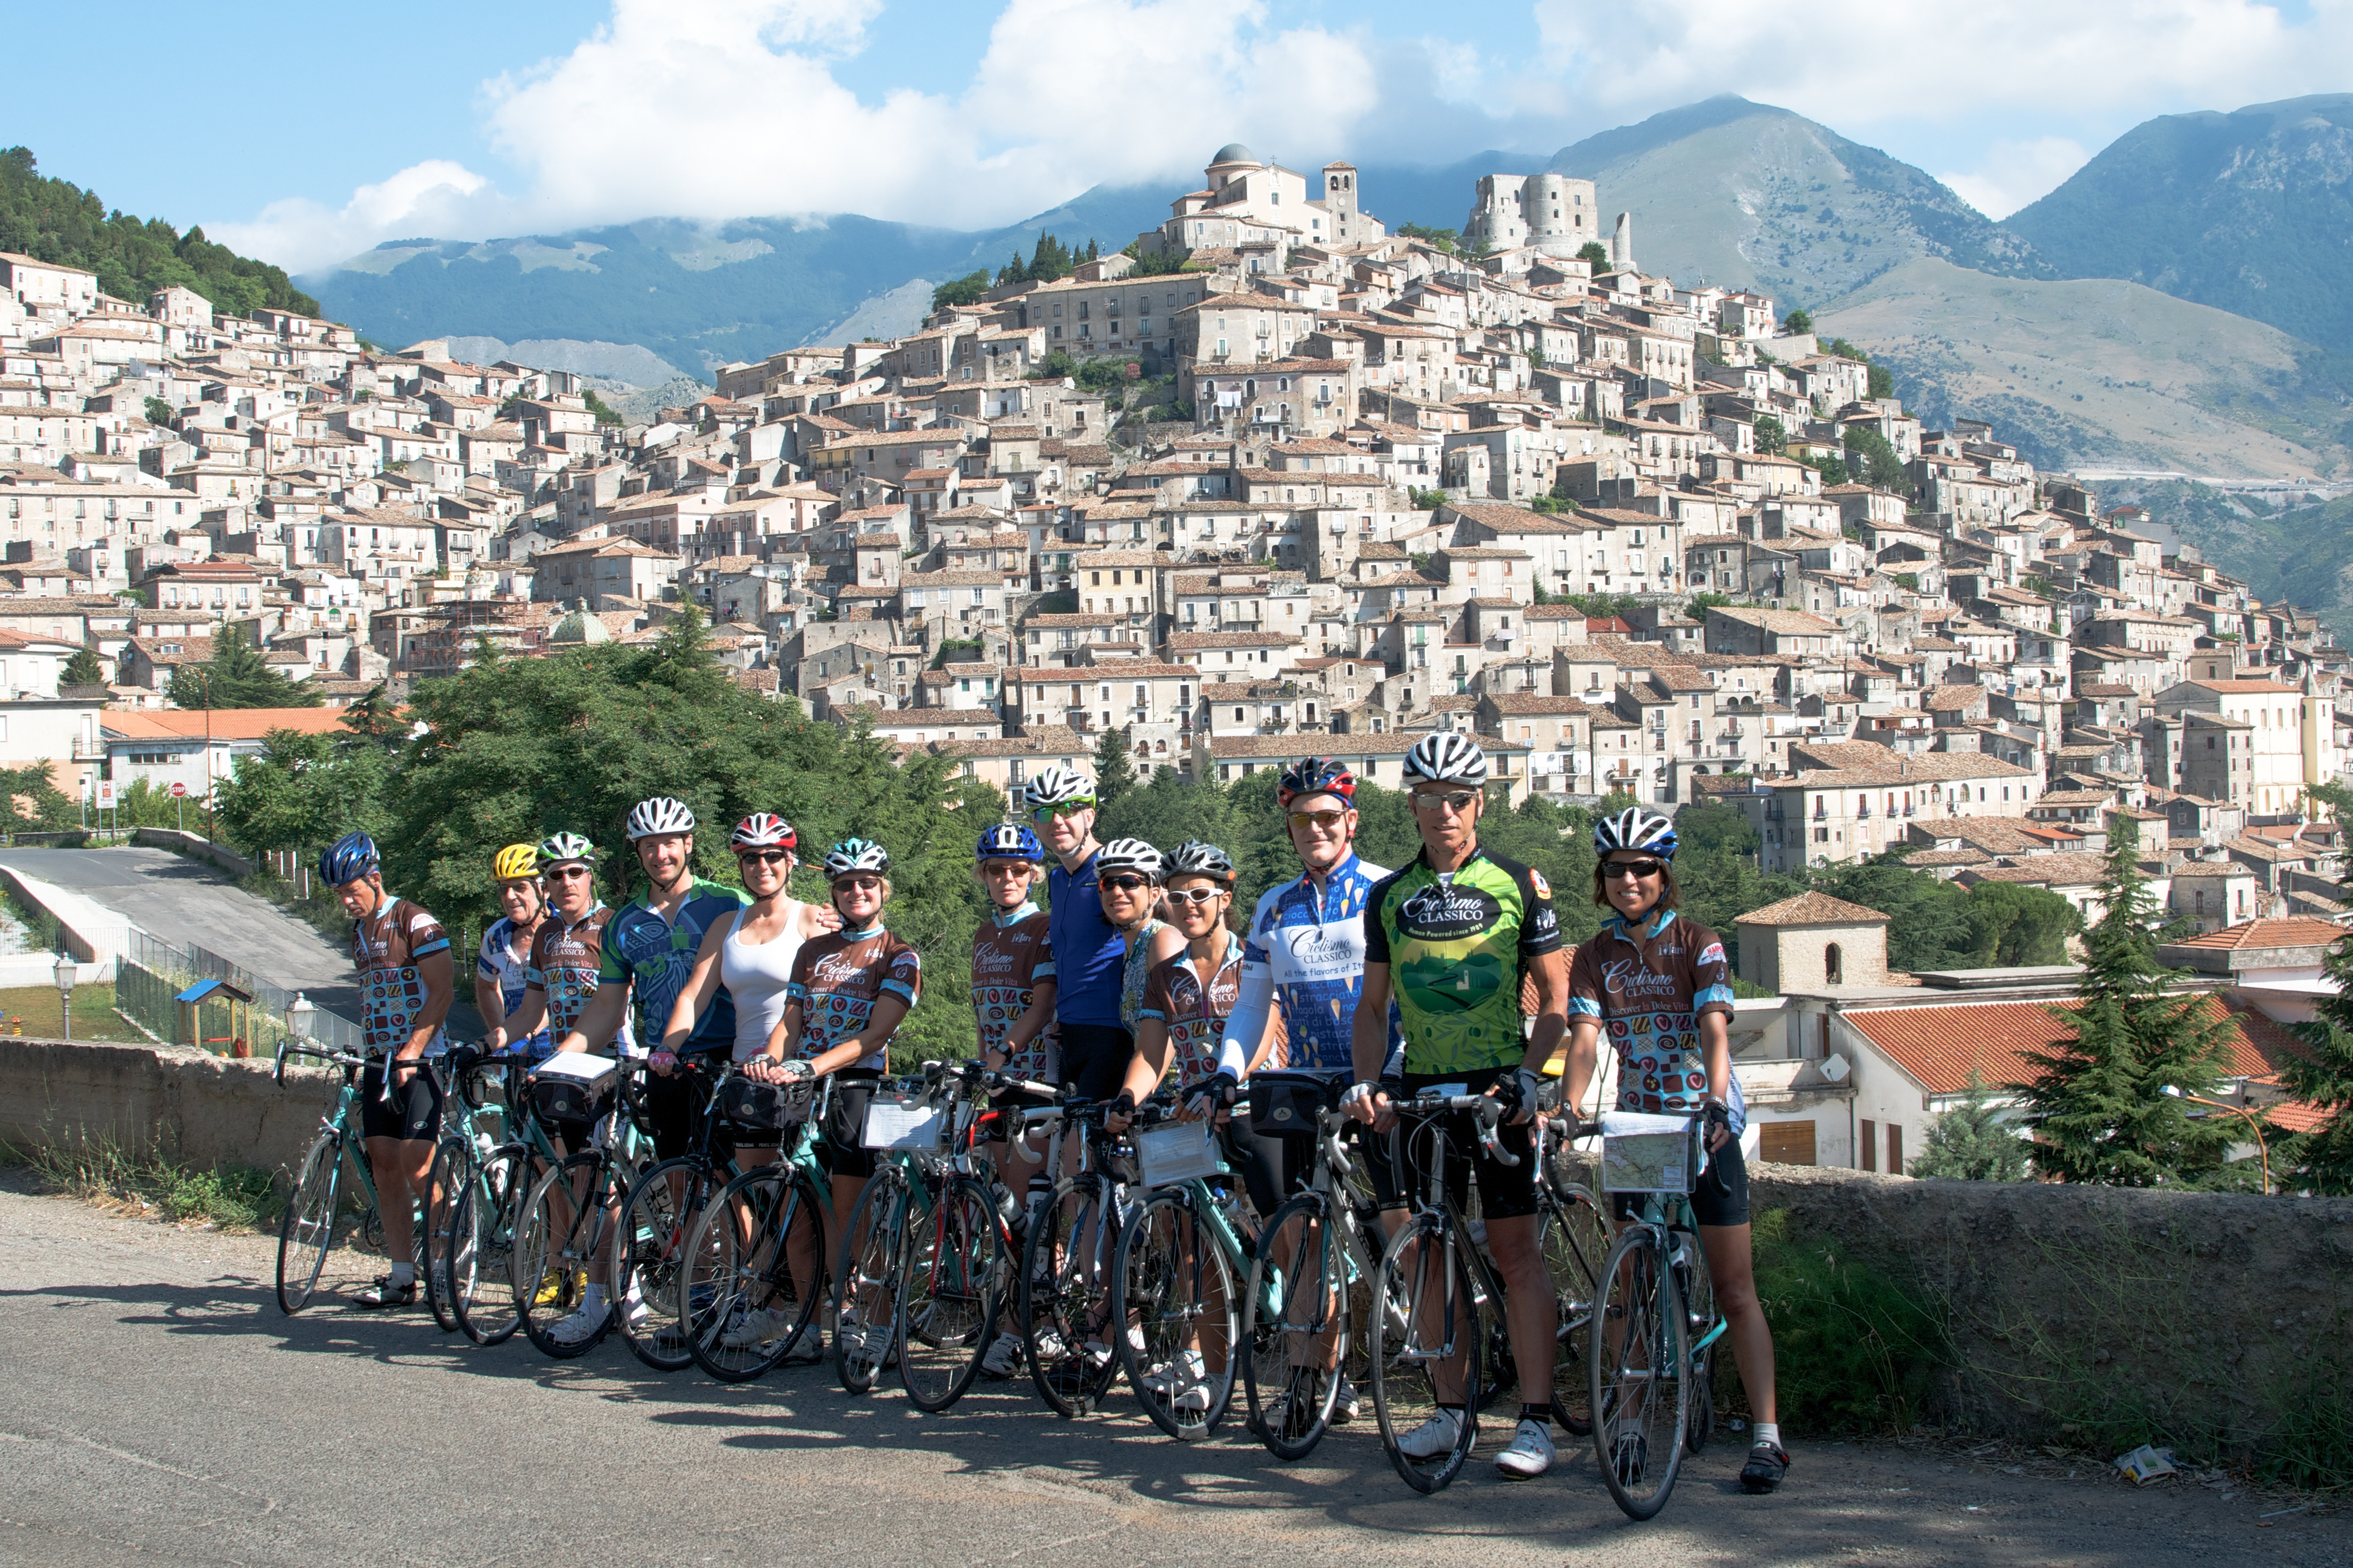 A photograph of a group of cyclists posing for a group photo on a road in Italy.